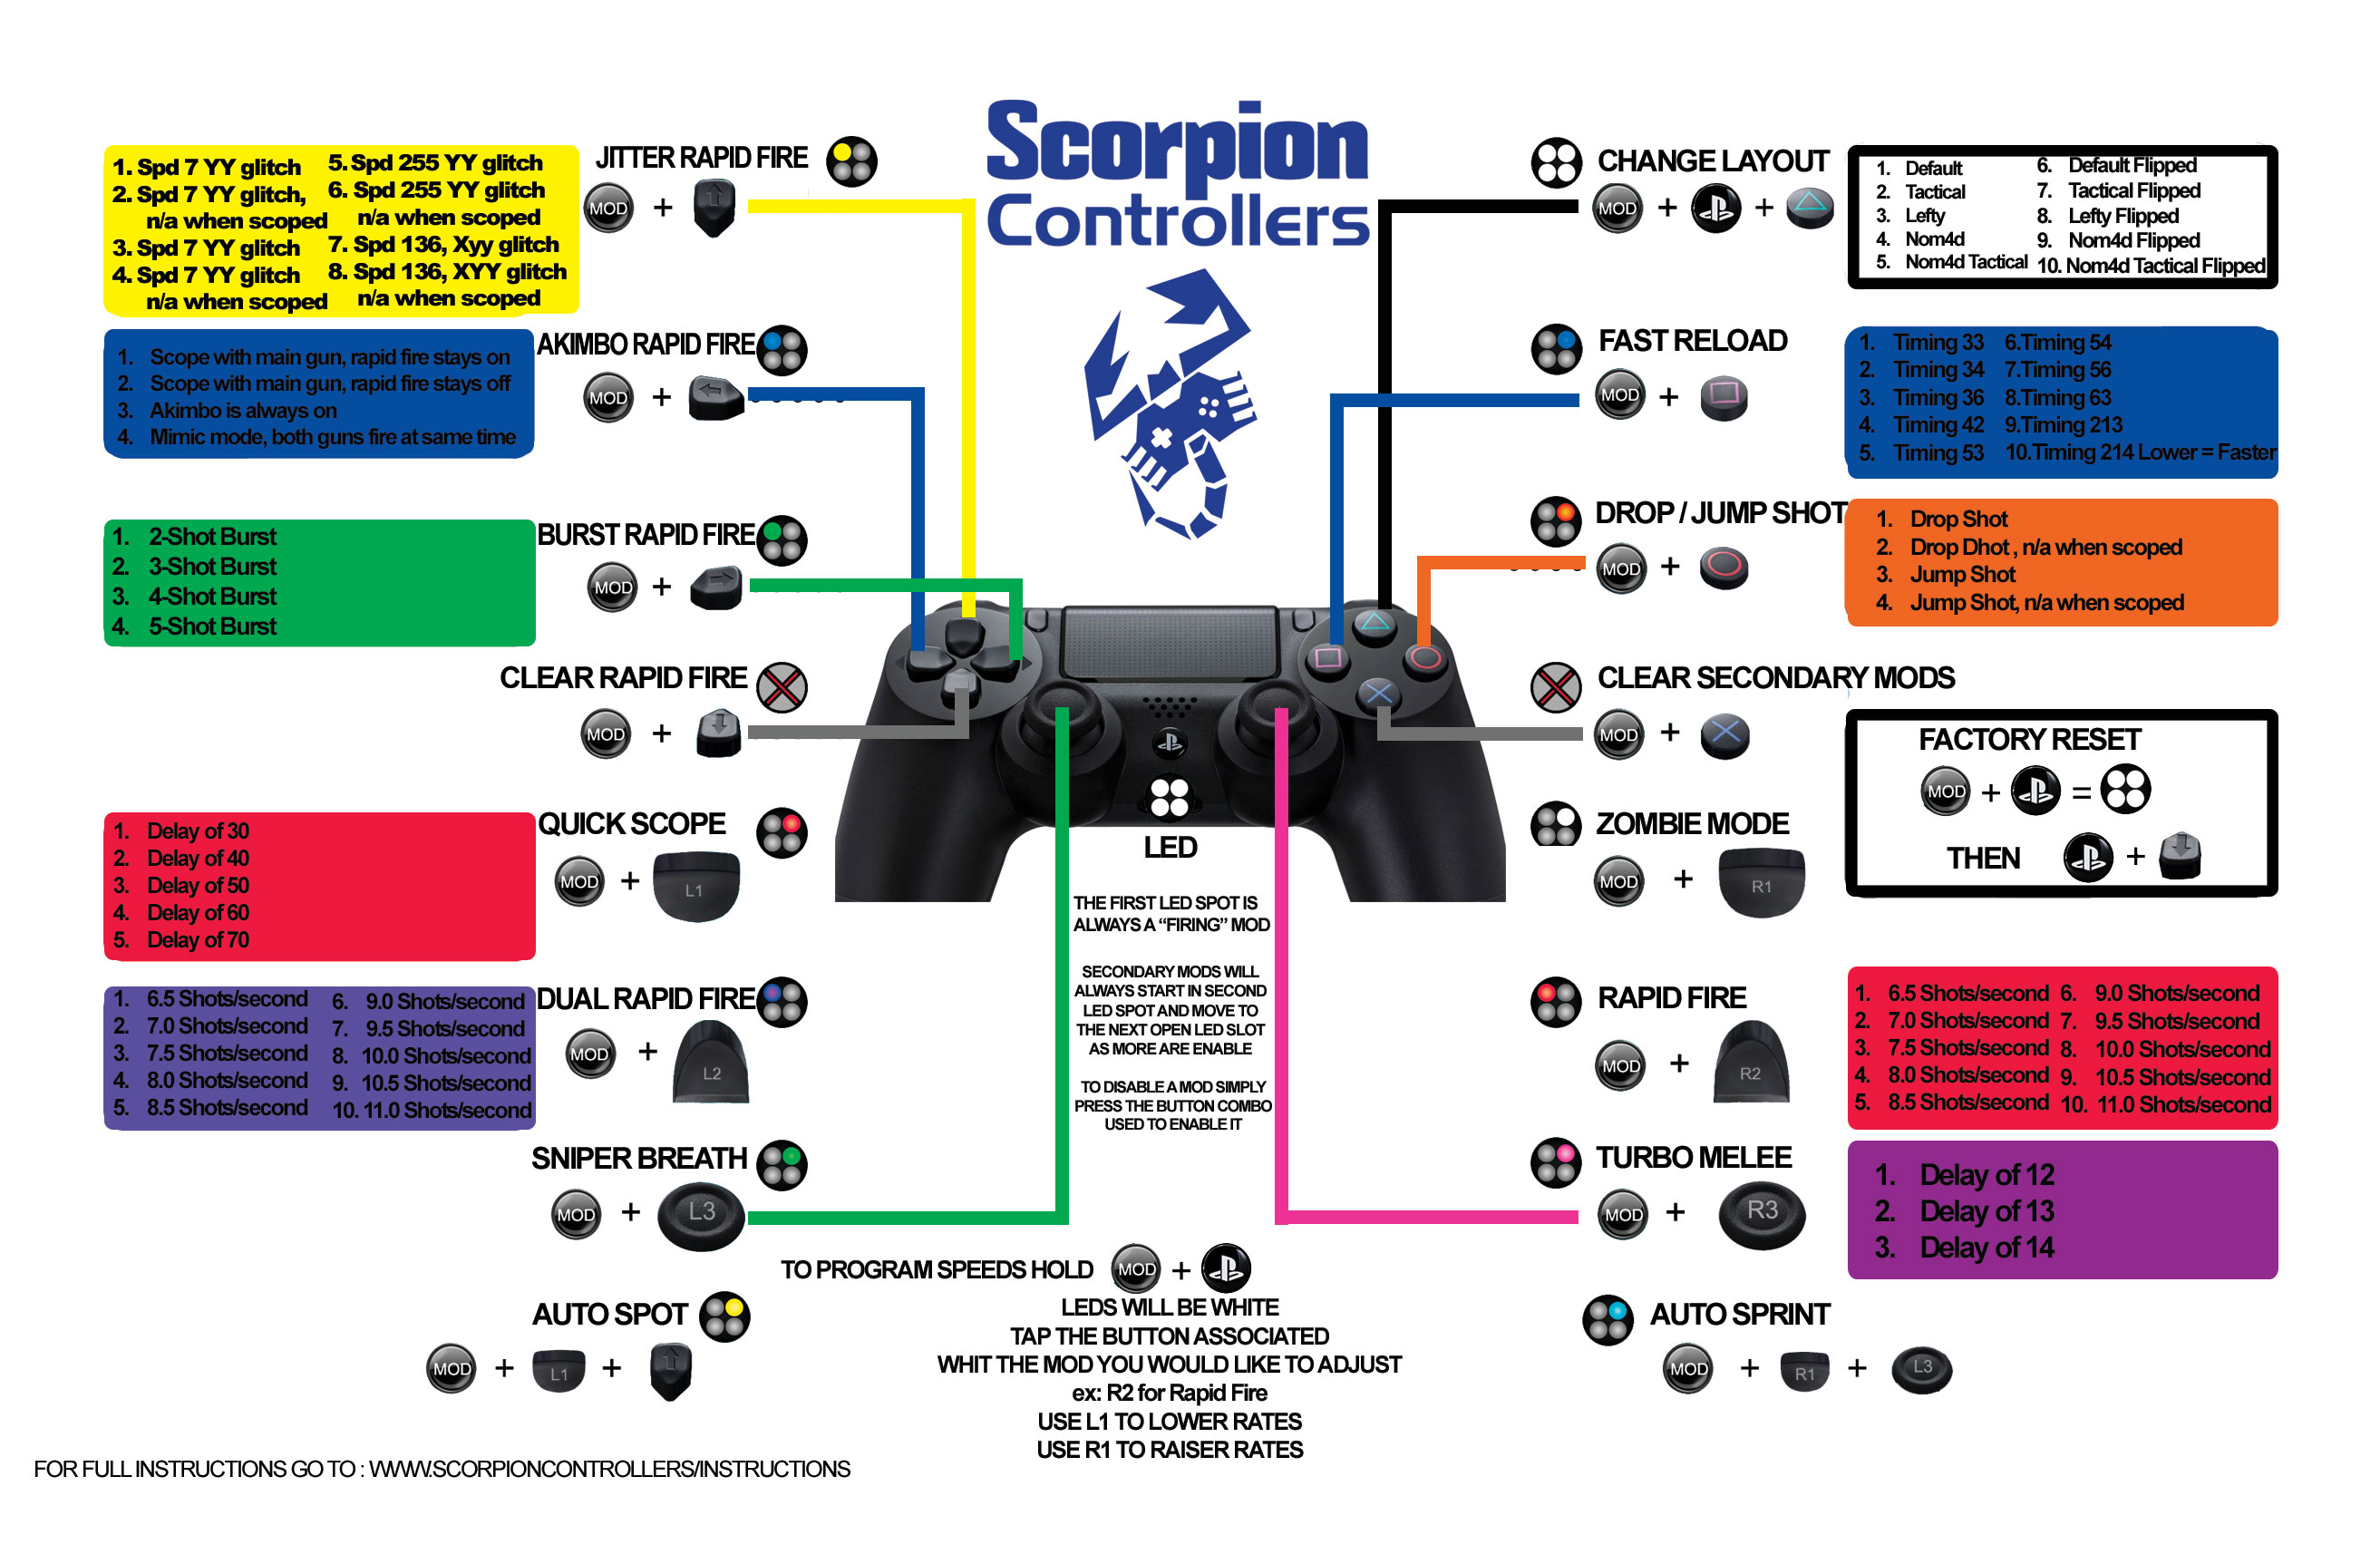 Ps3 Controller Wiring Diagram Free For You Xbox Wired Diagrams Modded Library Rh 50 Skriptoase De Wireless Sony Nonegame